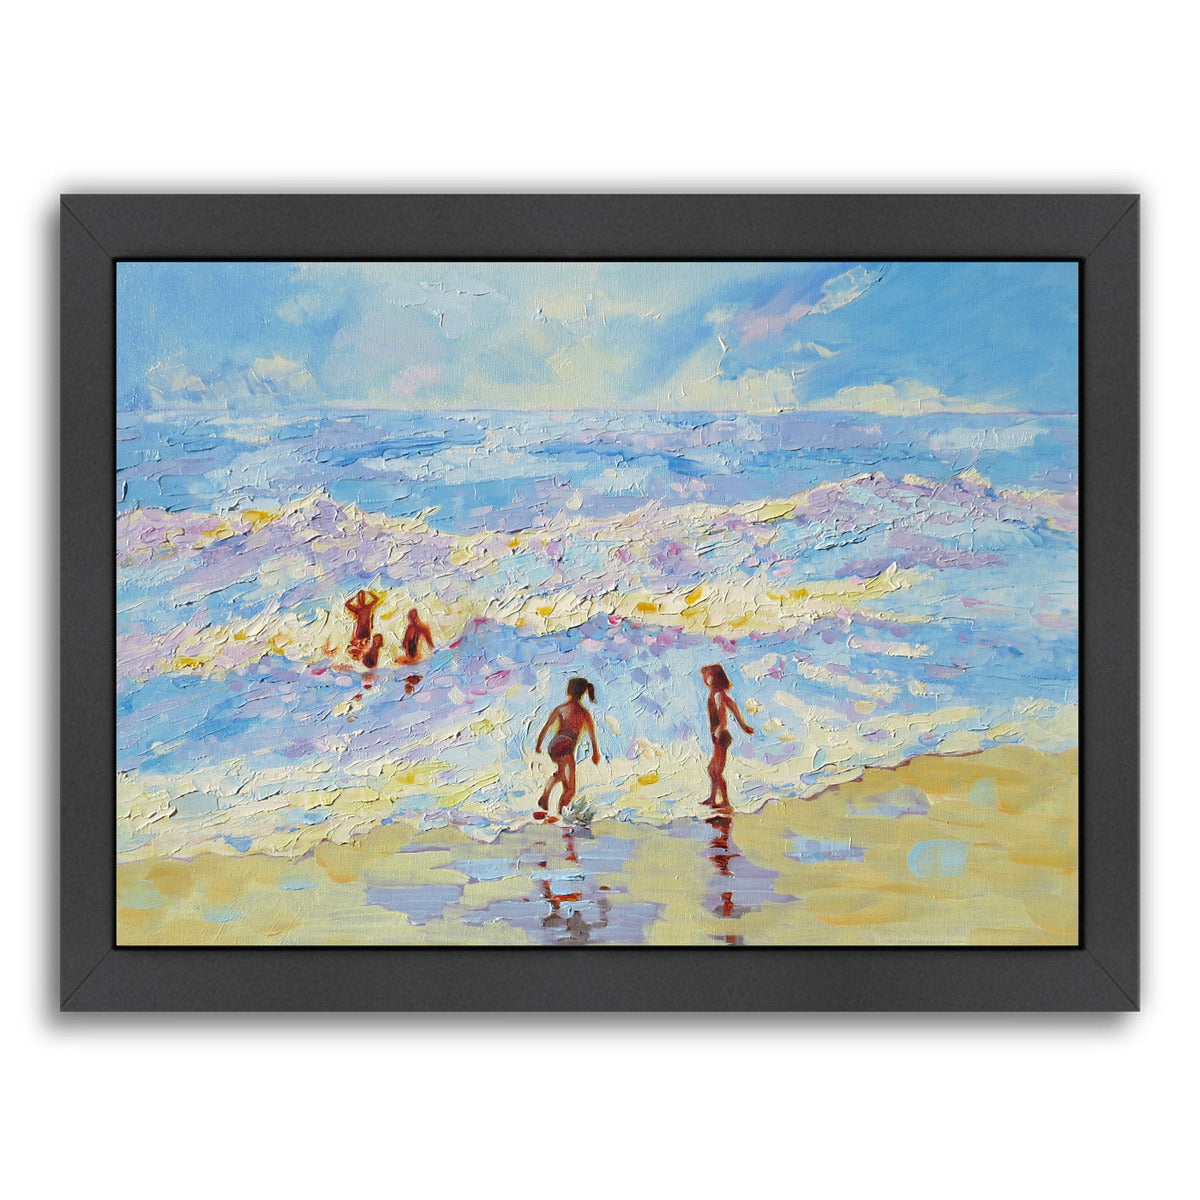 Summer Holiday By Mary Kemp - Black Framed Print - Wall Art - Americanflat